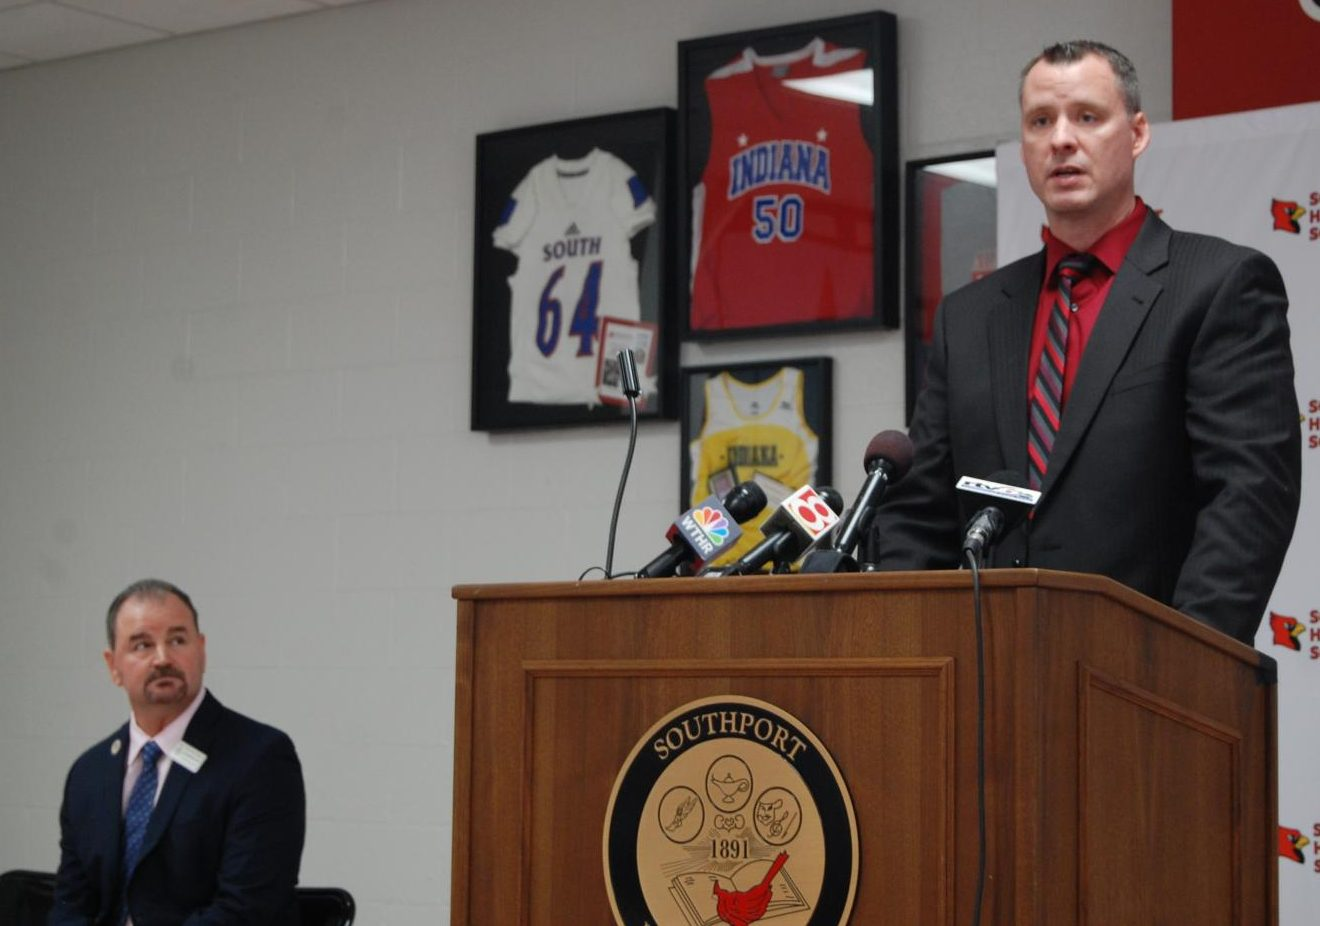 Head boys basketball coach Eric Brand explains his role in the violation of IHSAA rules at the press conference on Nov. 26.